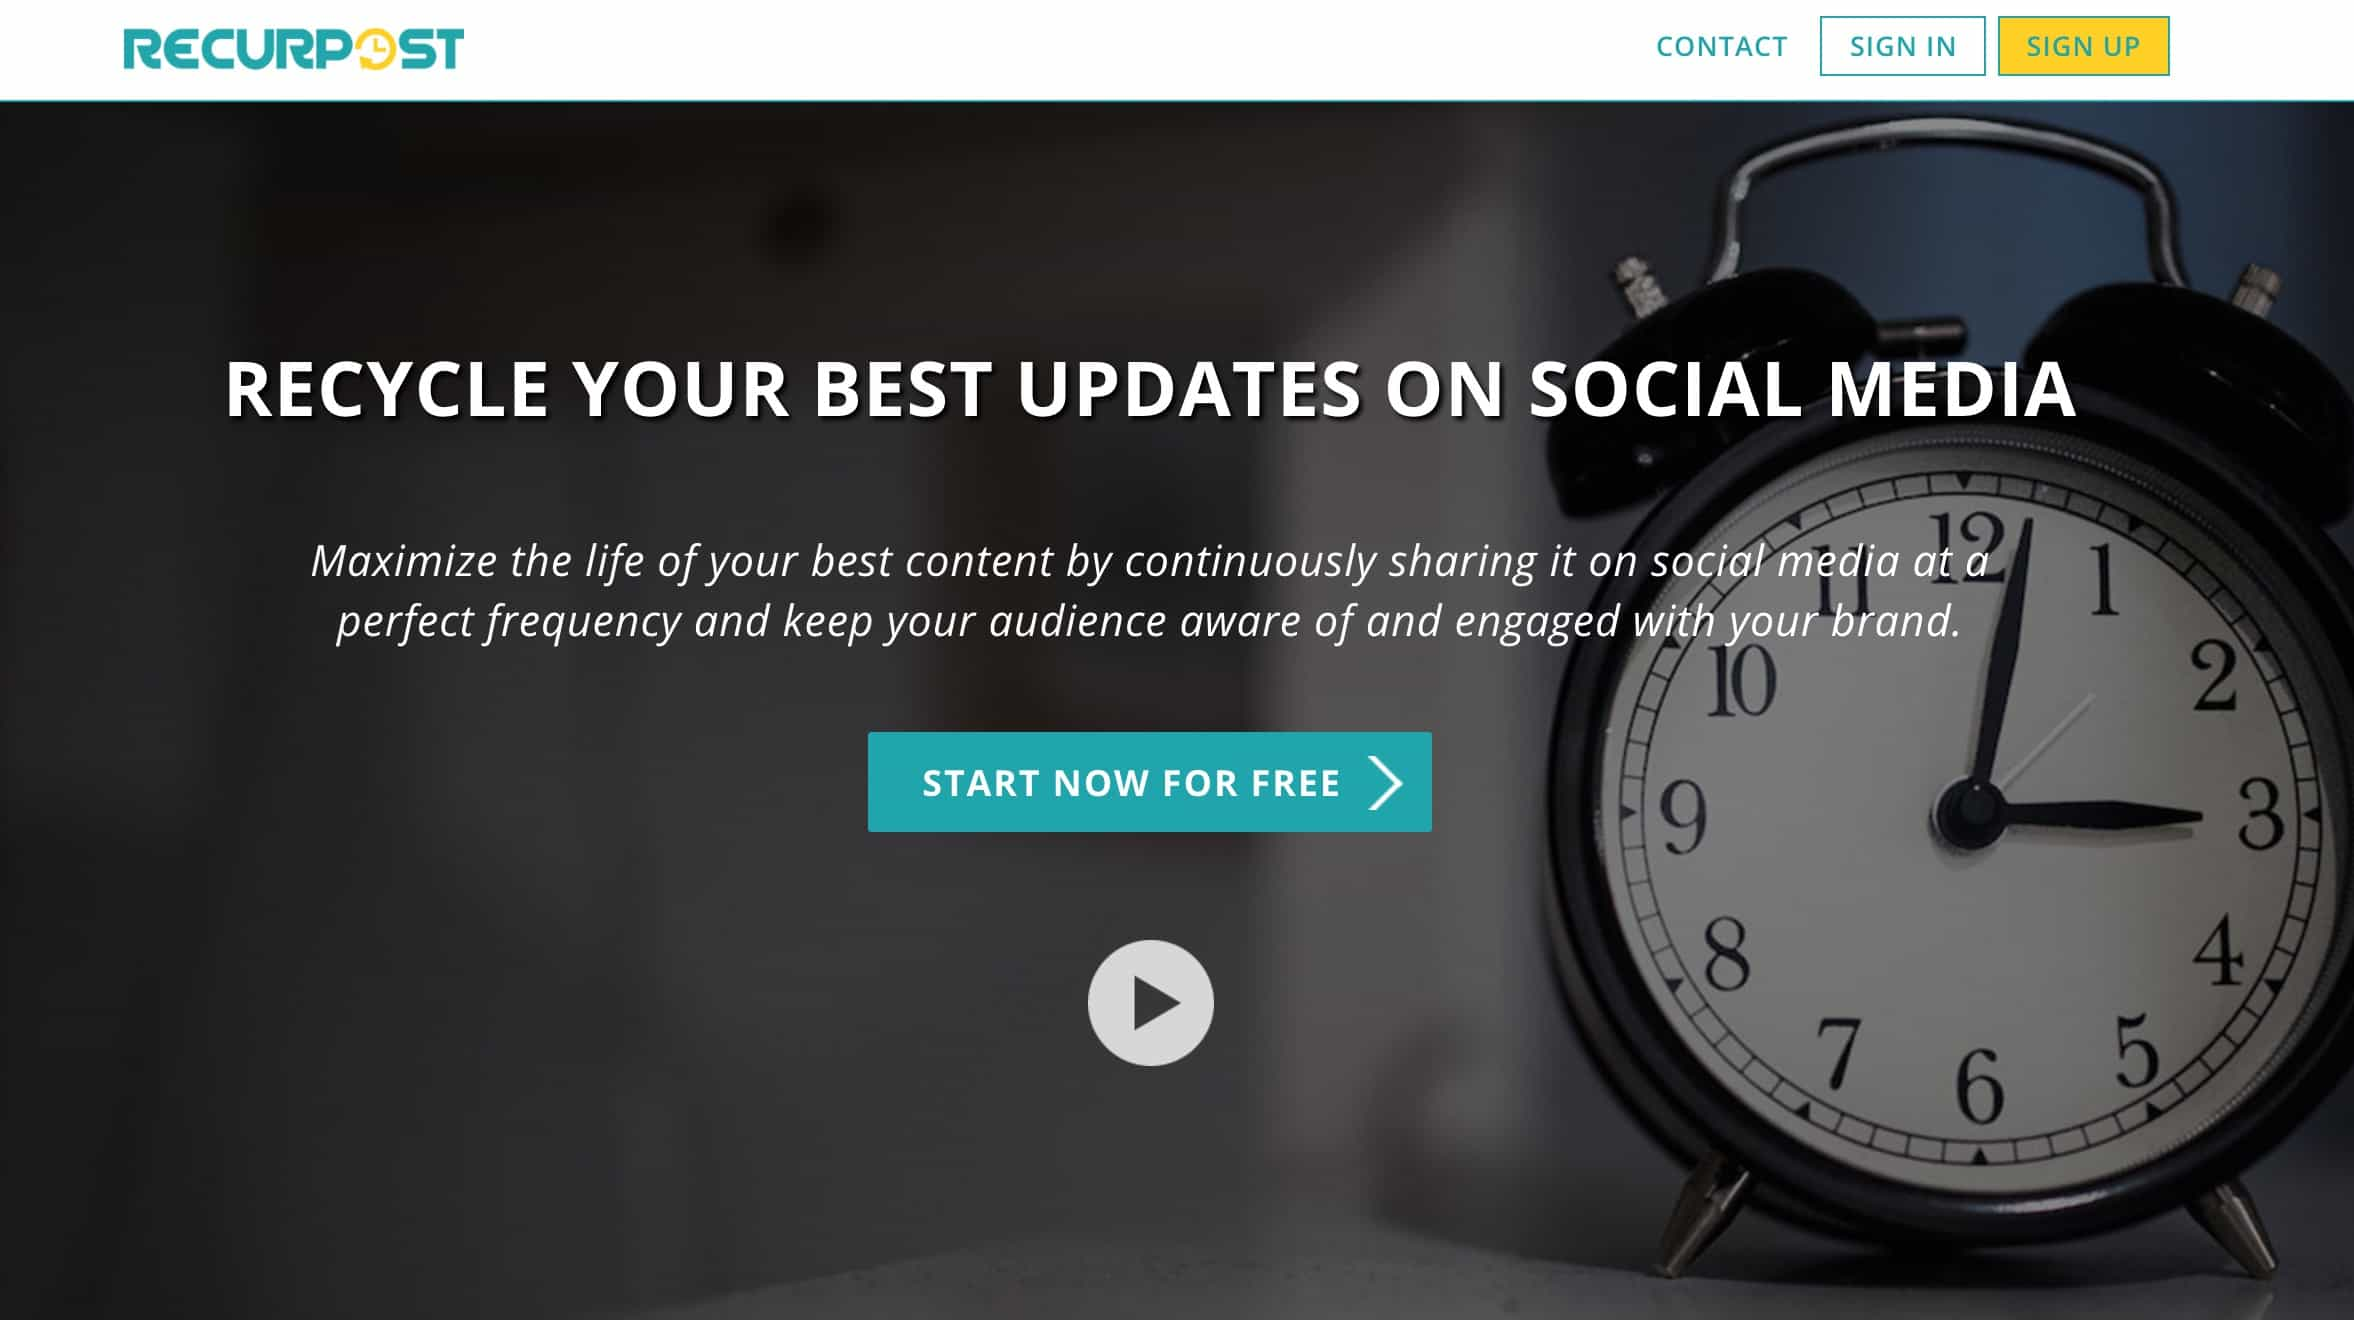 Recurpost: Social media scheduler